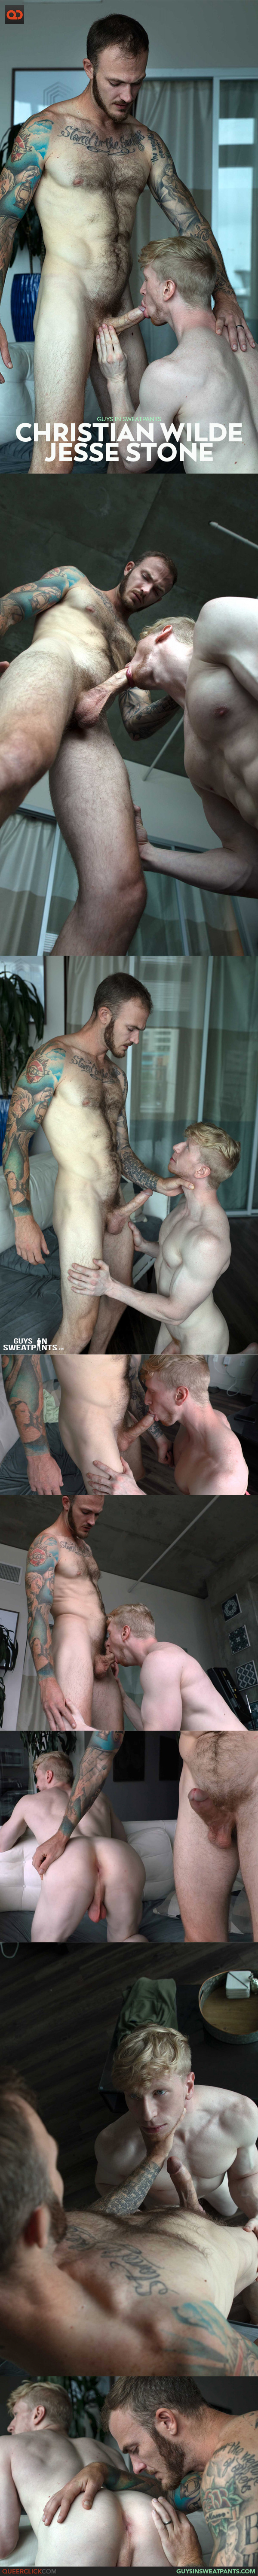 Guys in Sweatpants: Christian Wilde and Jesse Stone